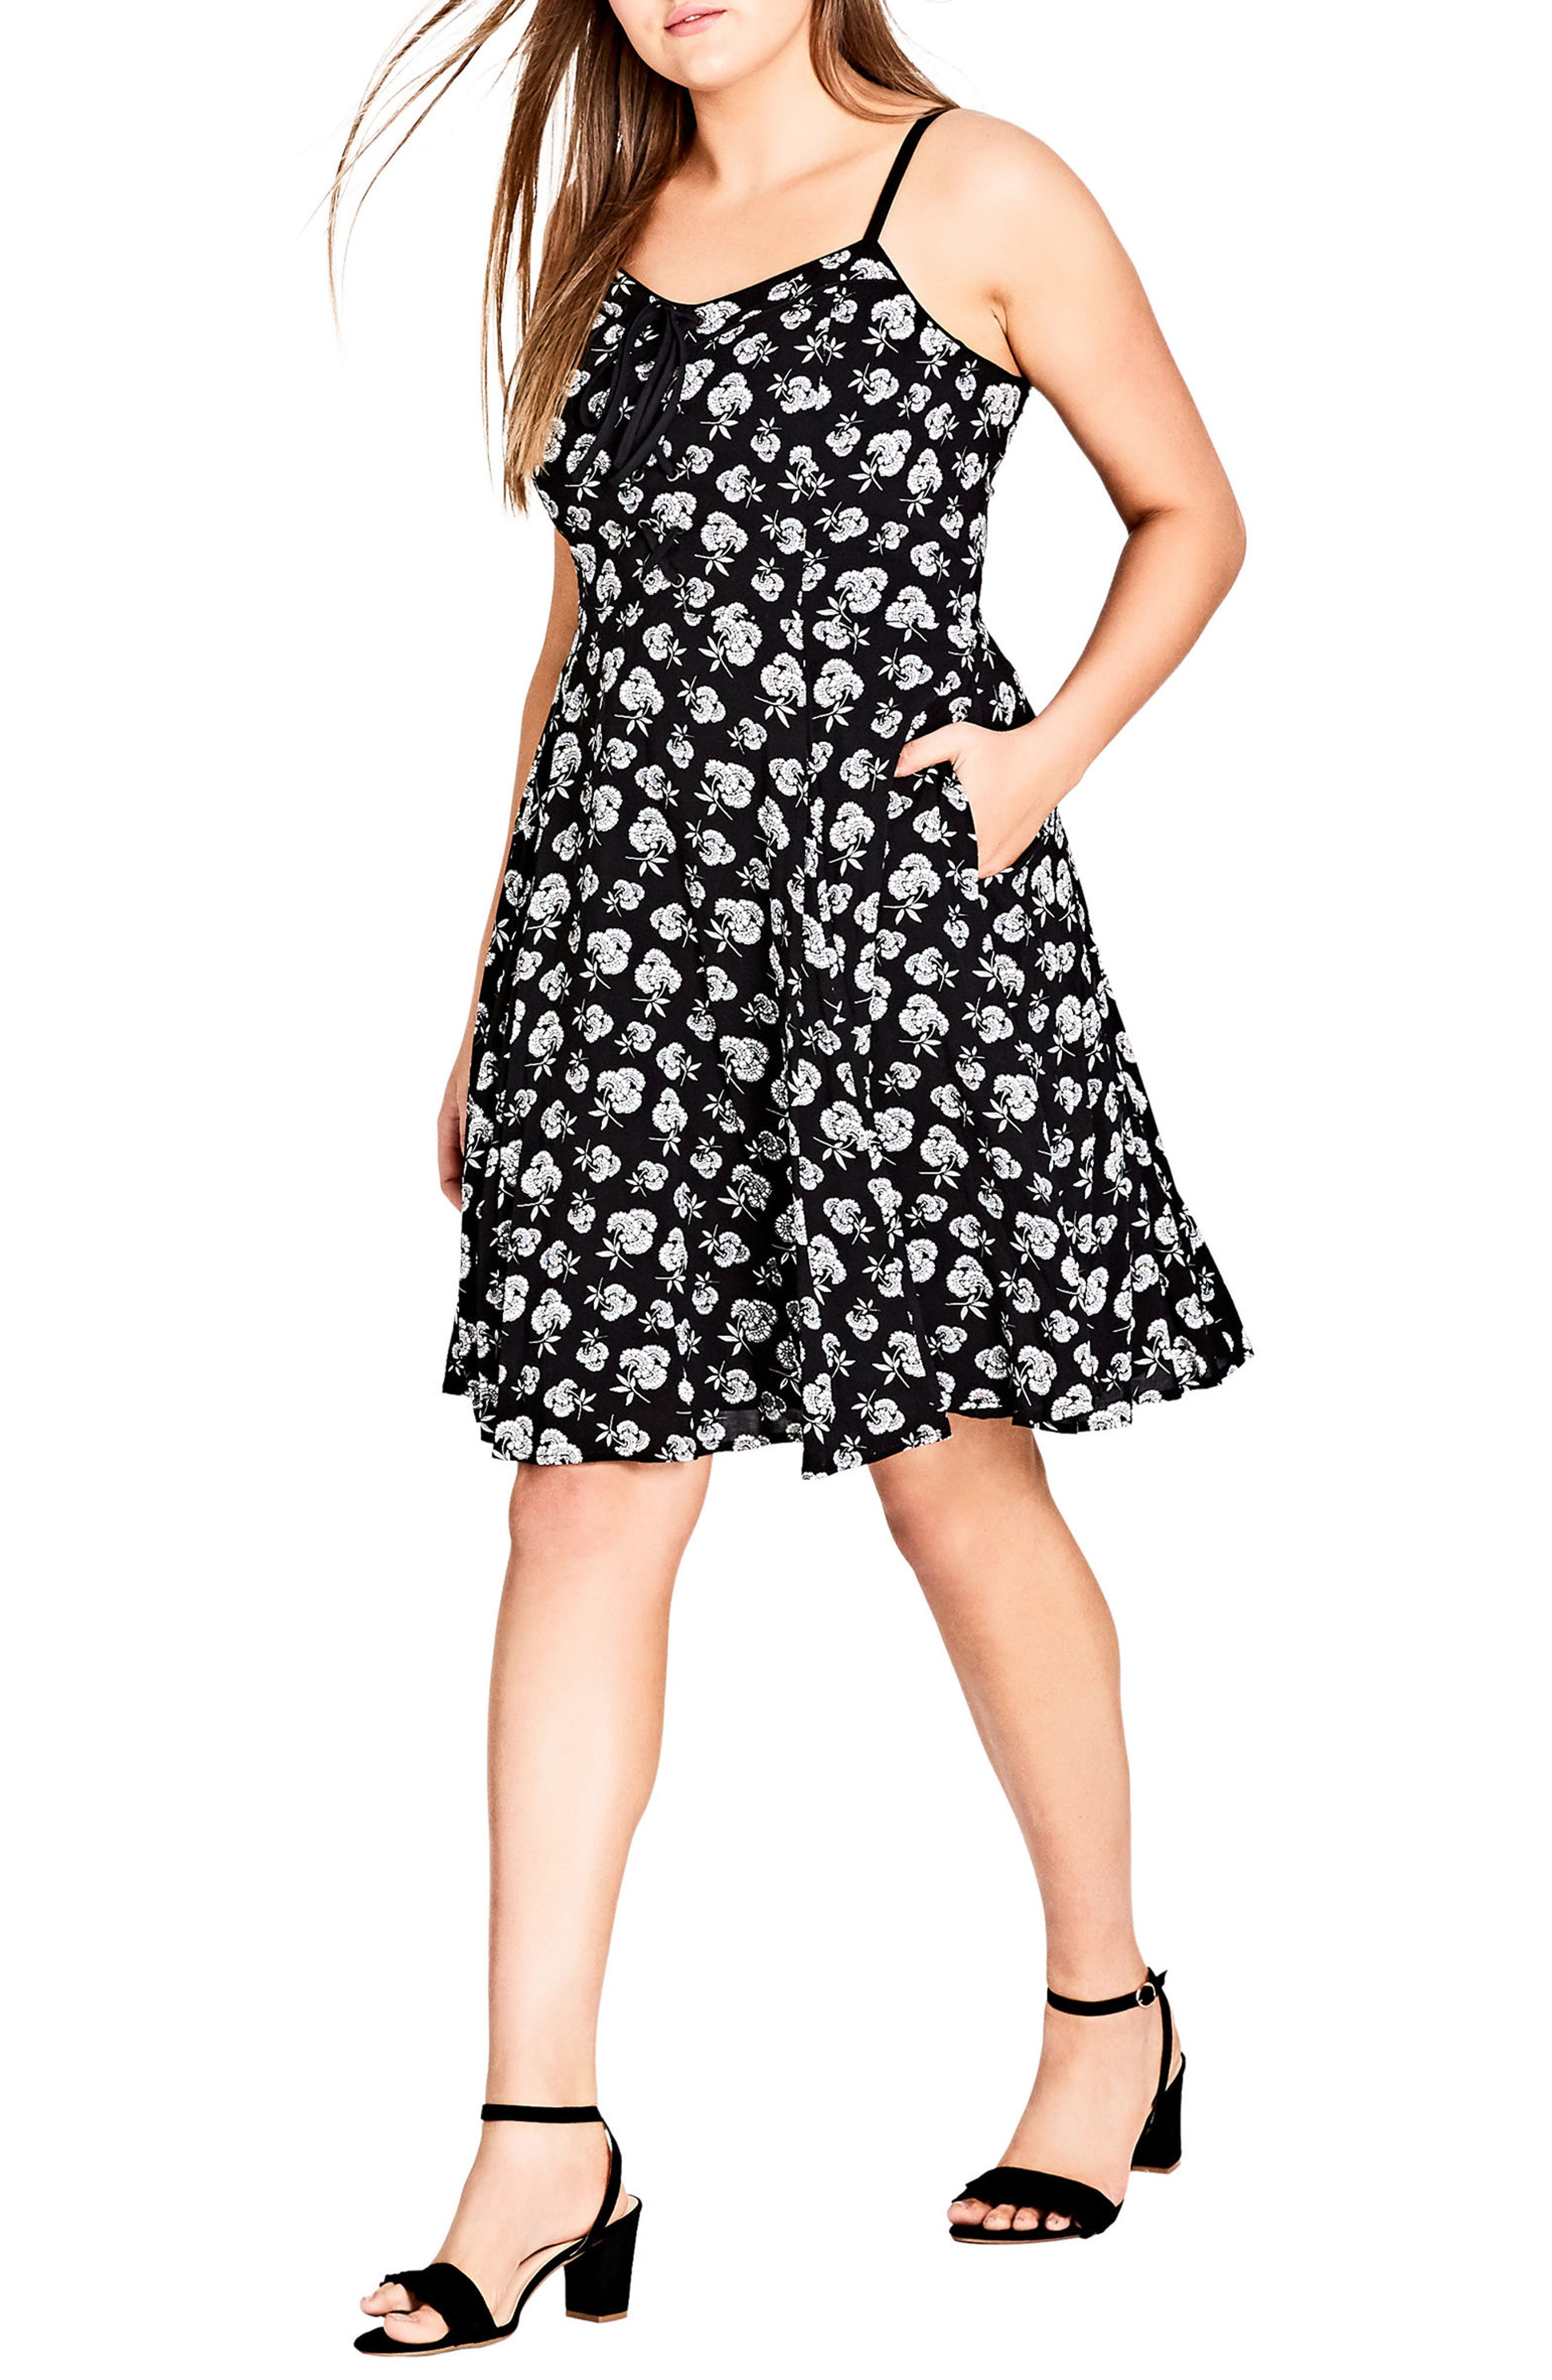 Deco Floral A-Line Dress,                             Main thumbnail 1, color,                             Deco Floral